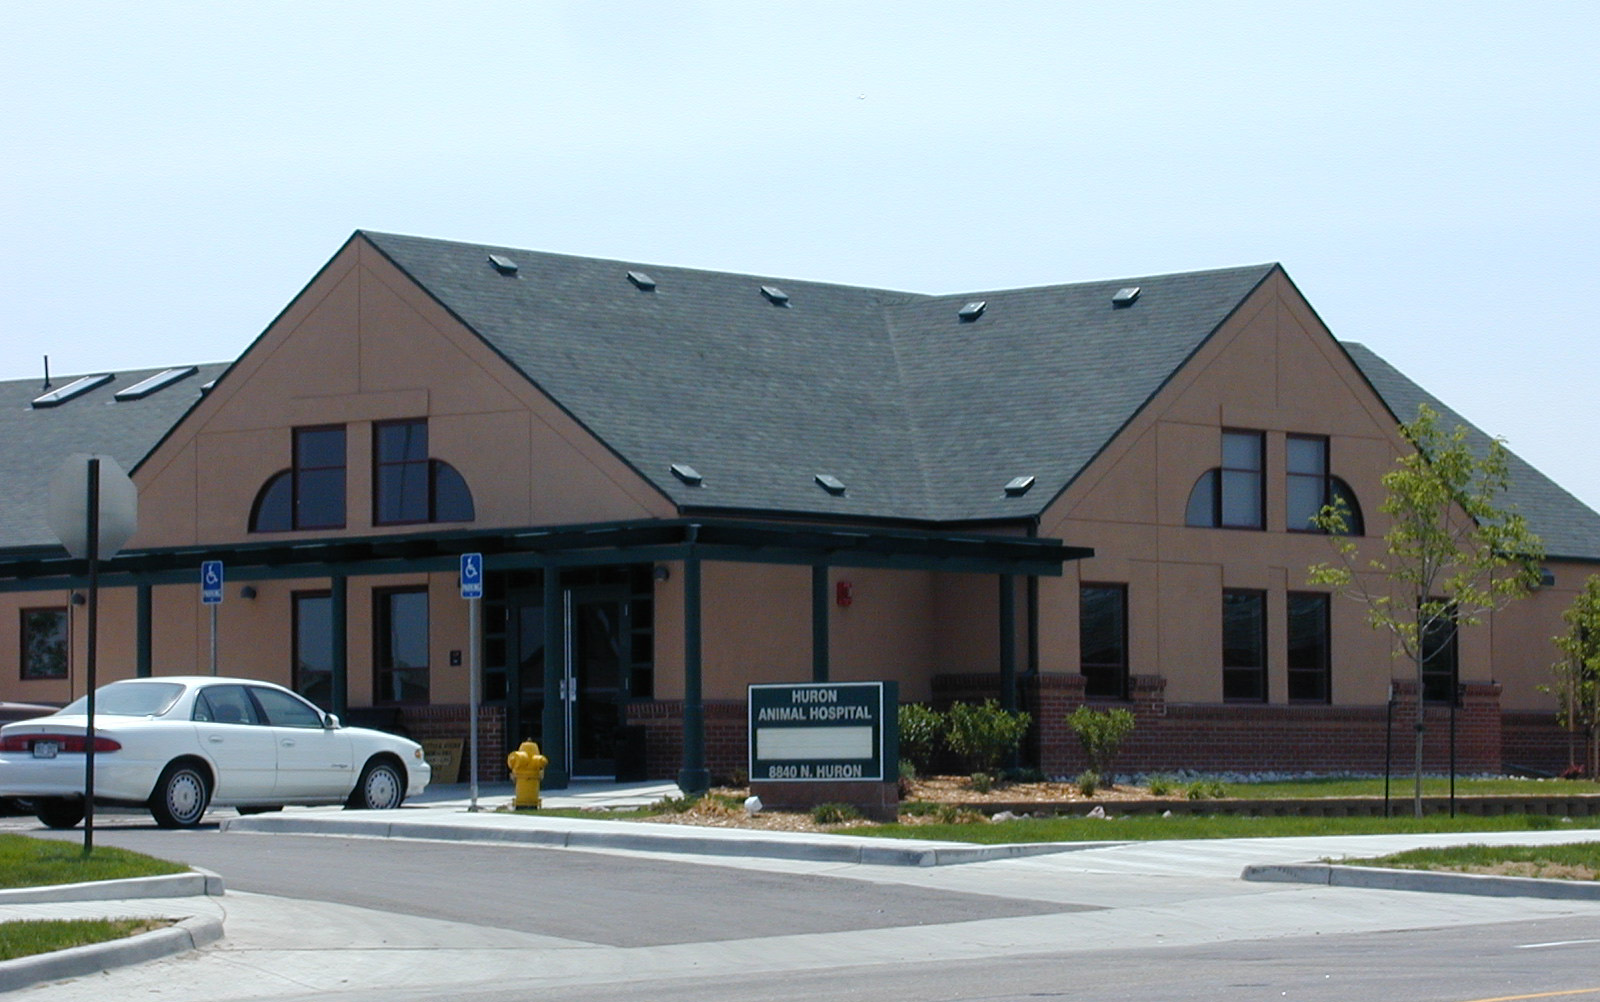 Huron Animal Hospital. Thornton, CO